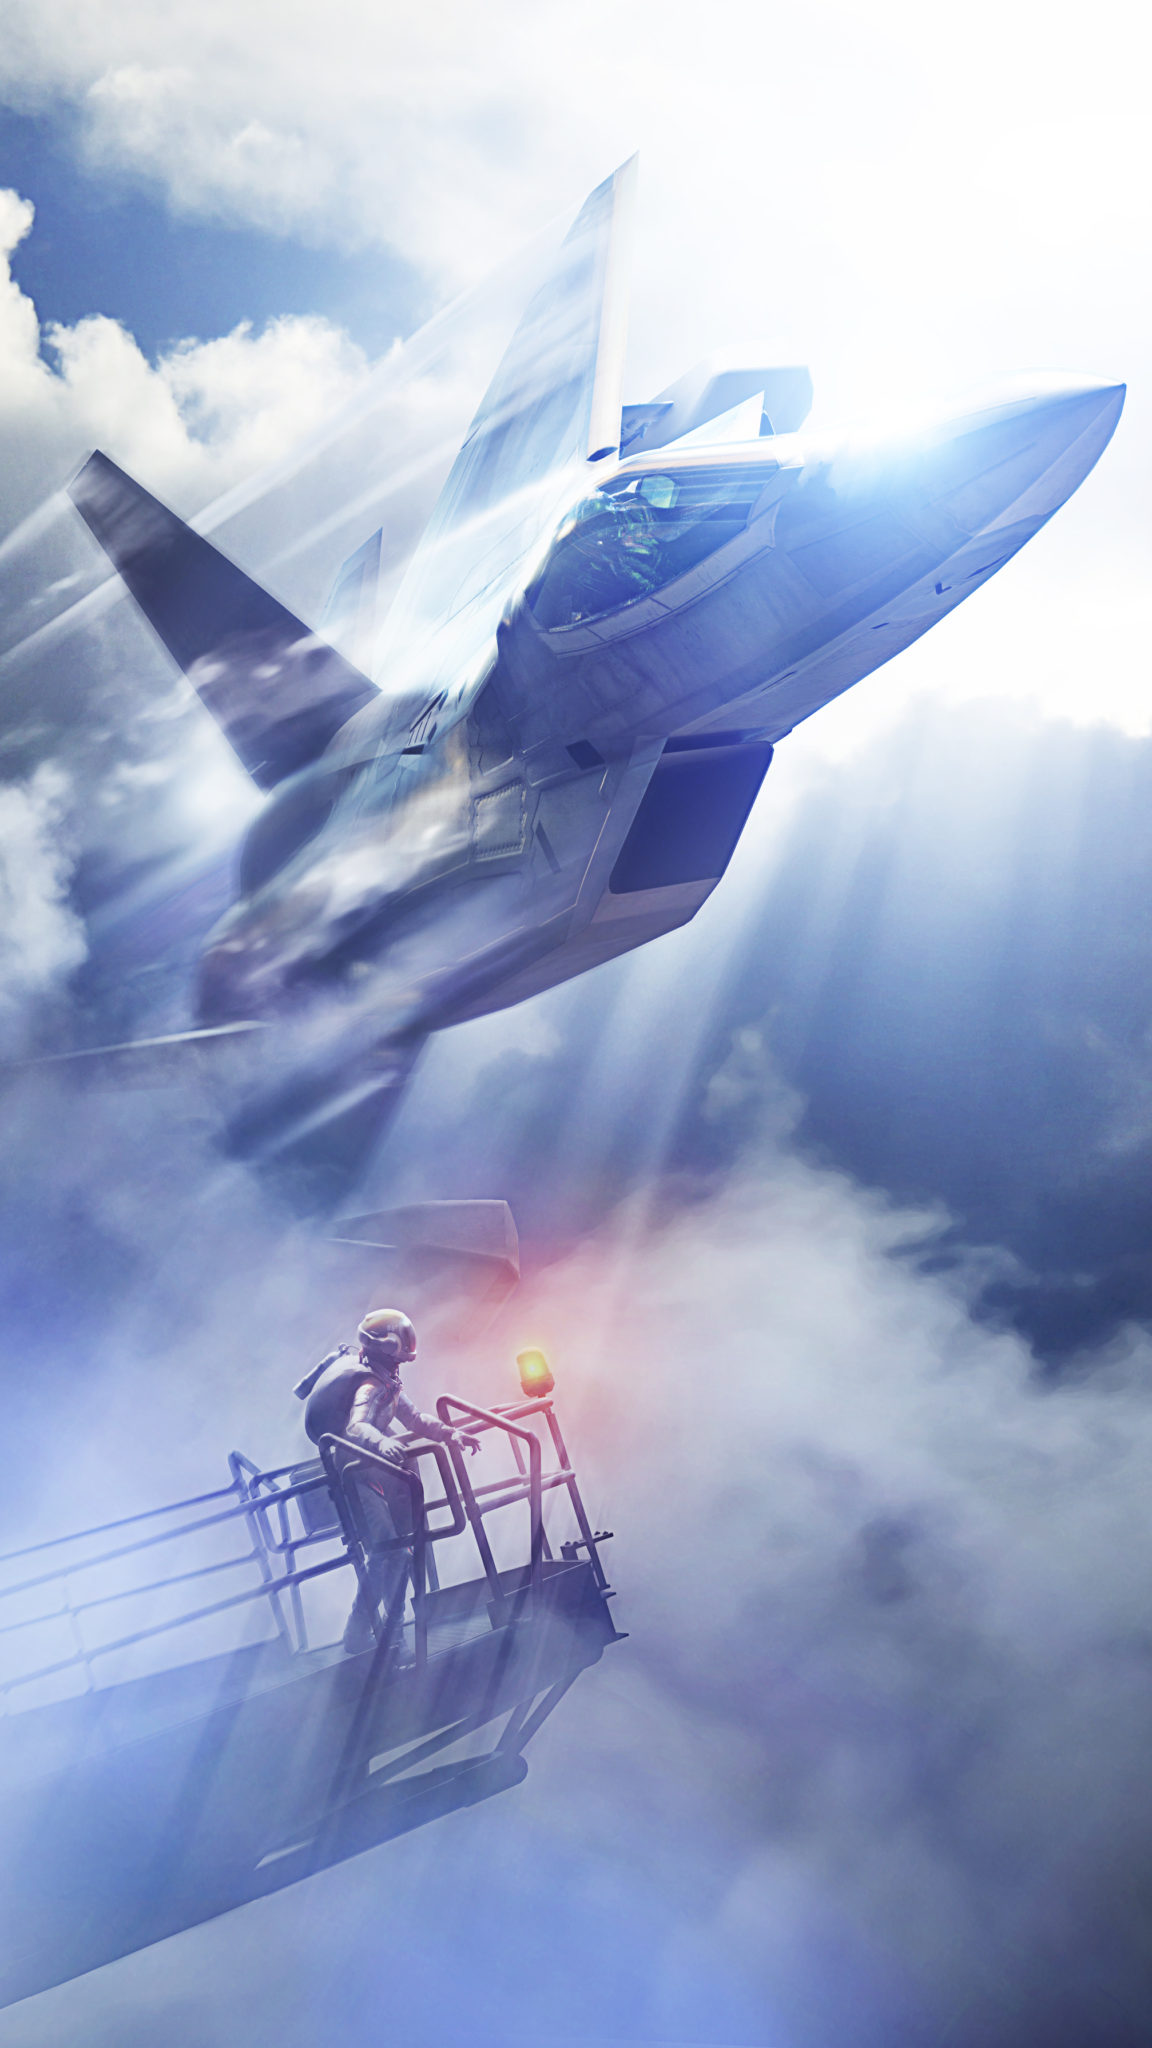 Ace Combat 7: Skies Unknown - Ace Combat 7: Skies Unknown Арт